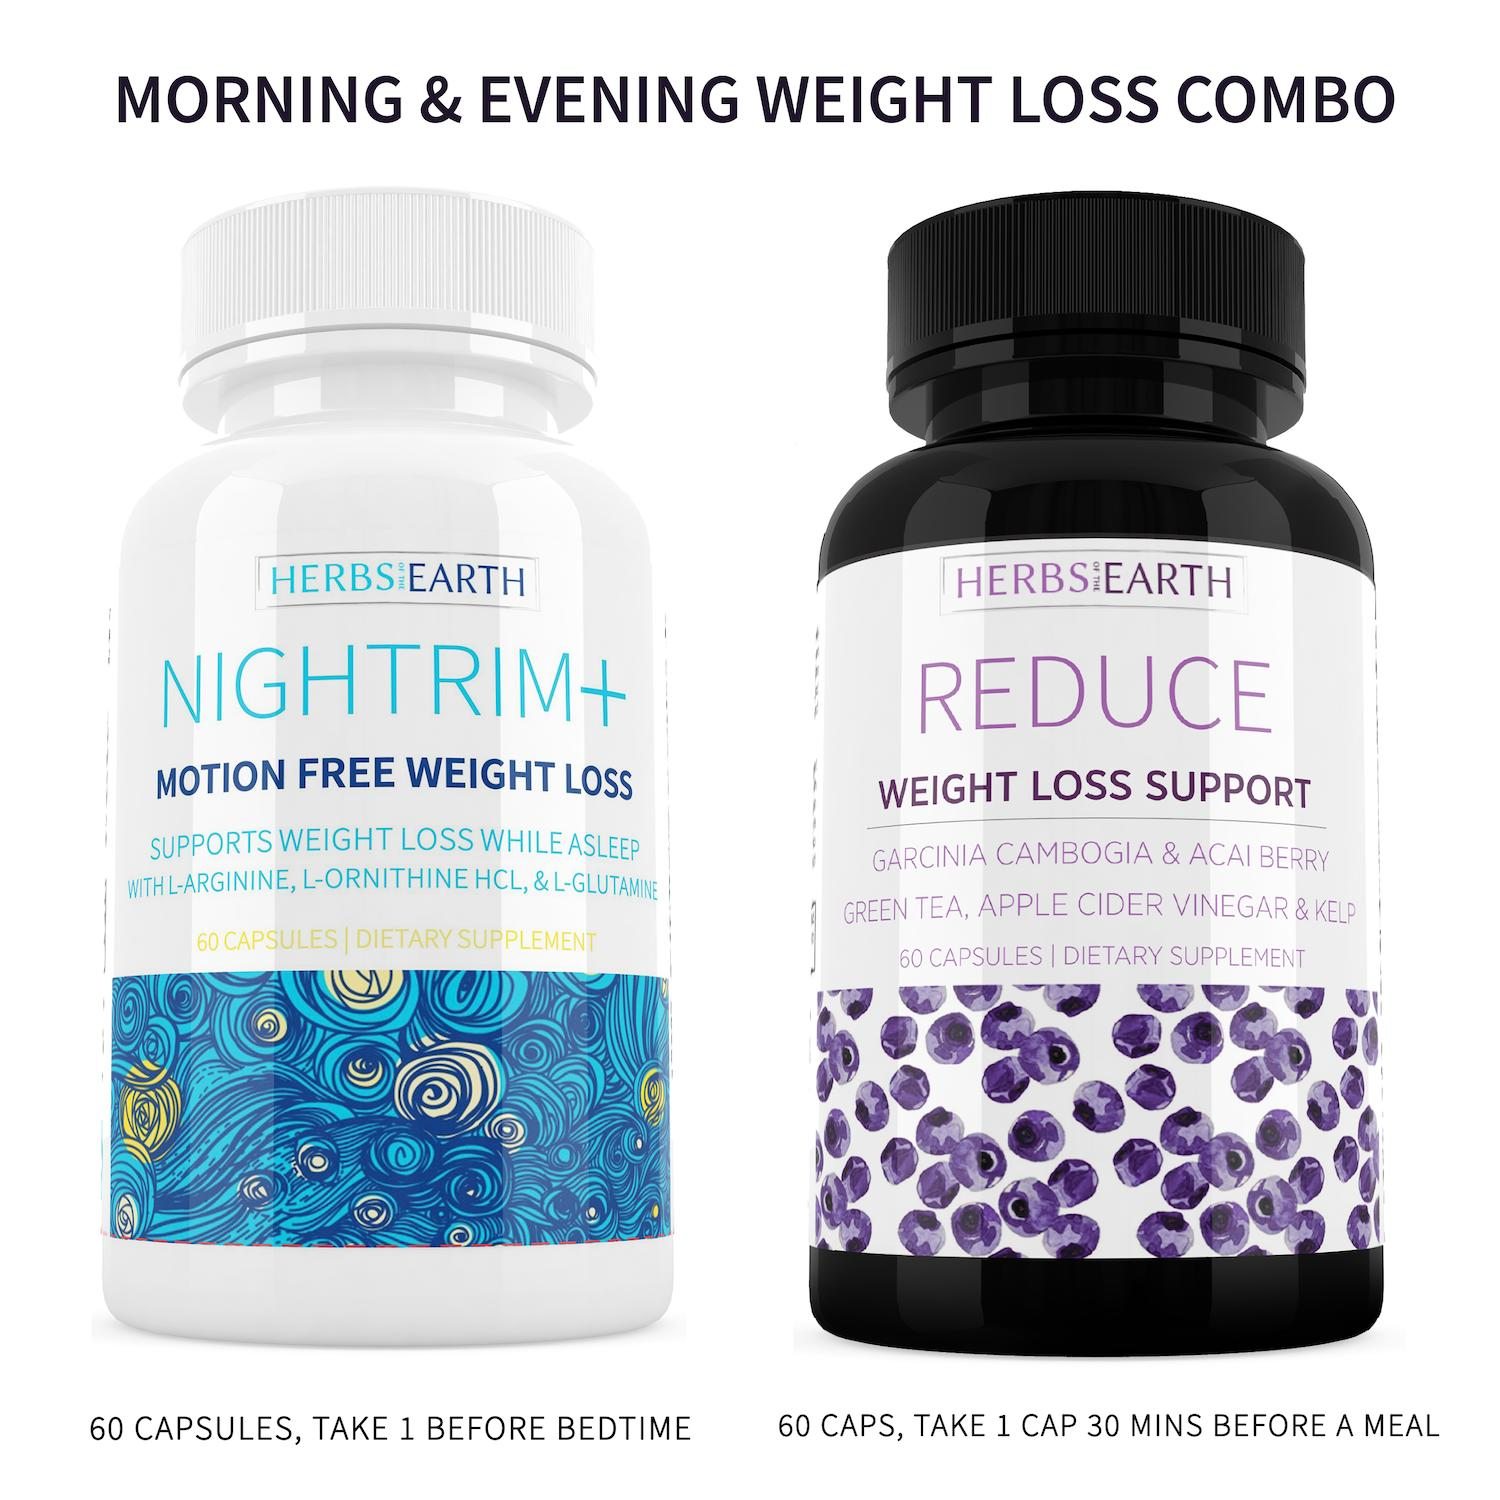 Reduce and NighTrim 24 Hour Weight Loss Diet Pills, Garcinia Cambogia, Acai, plus